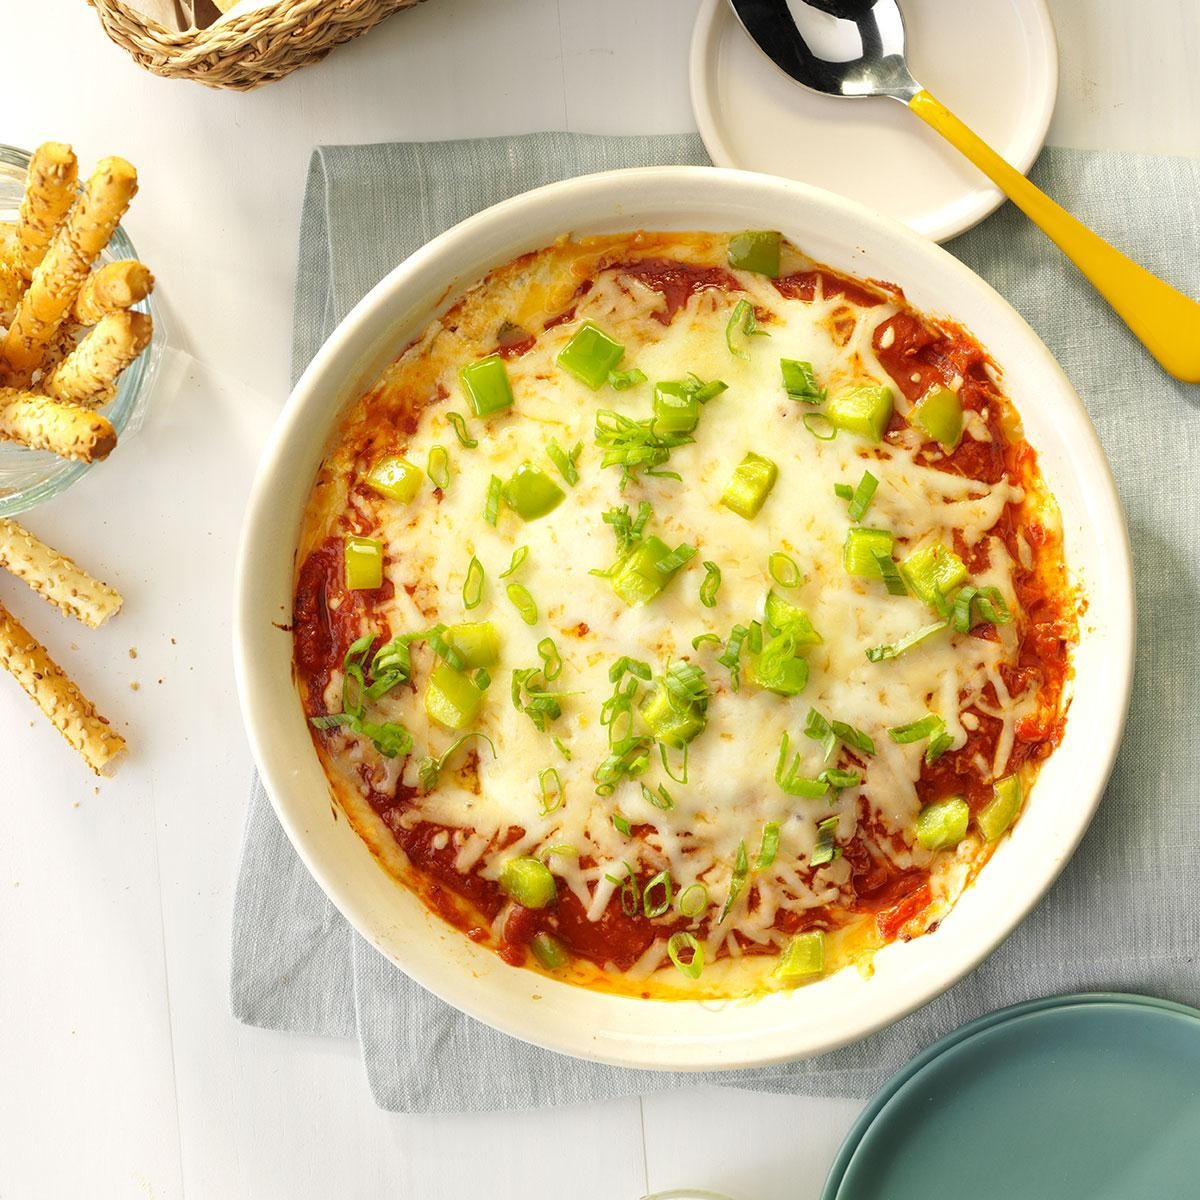 Easy Appetizers And Dips: Hot Pizza Dip Recipe